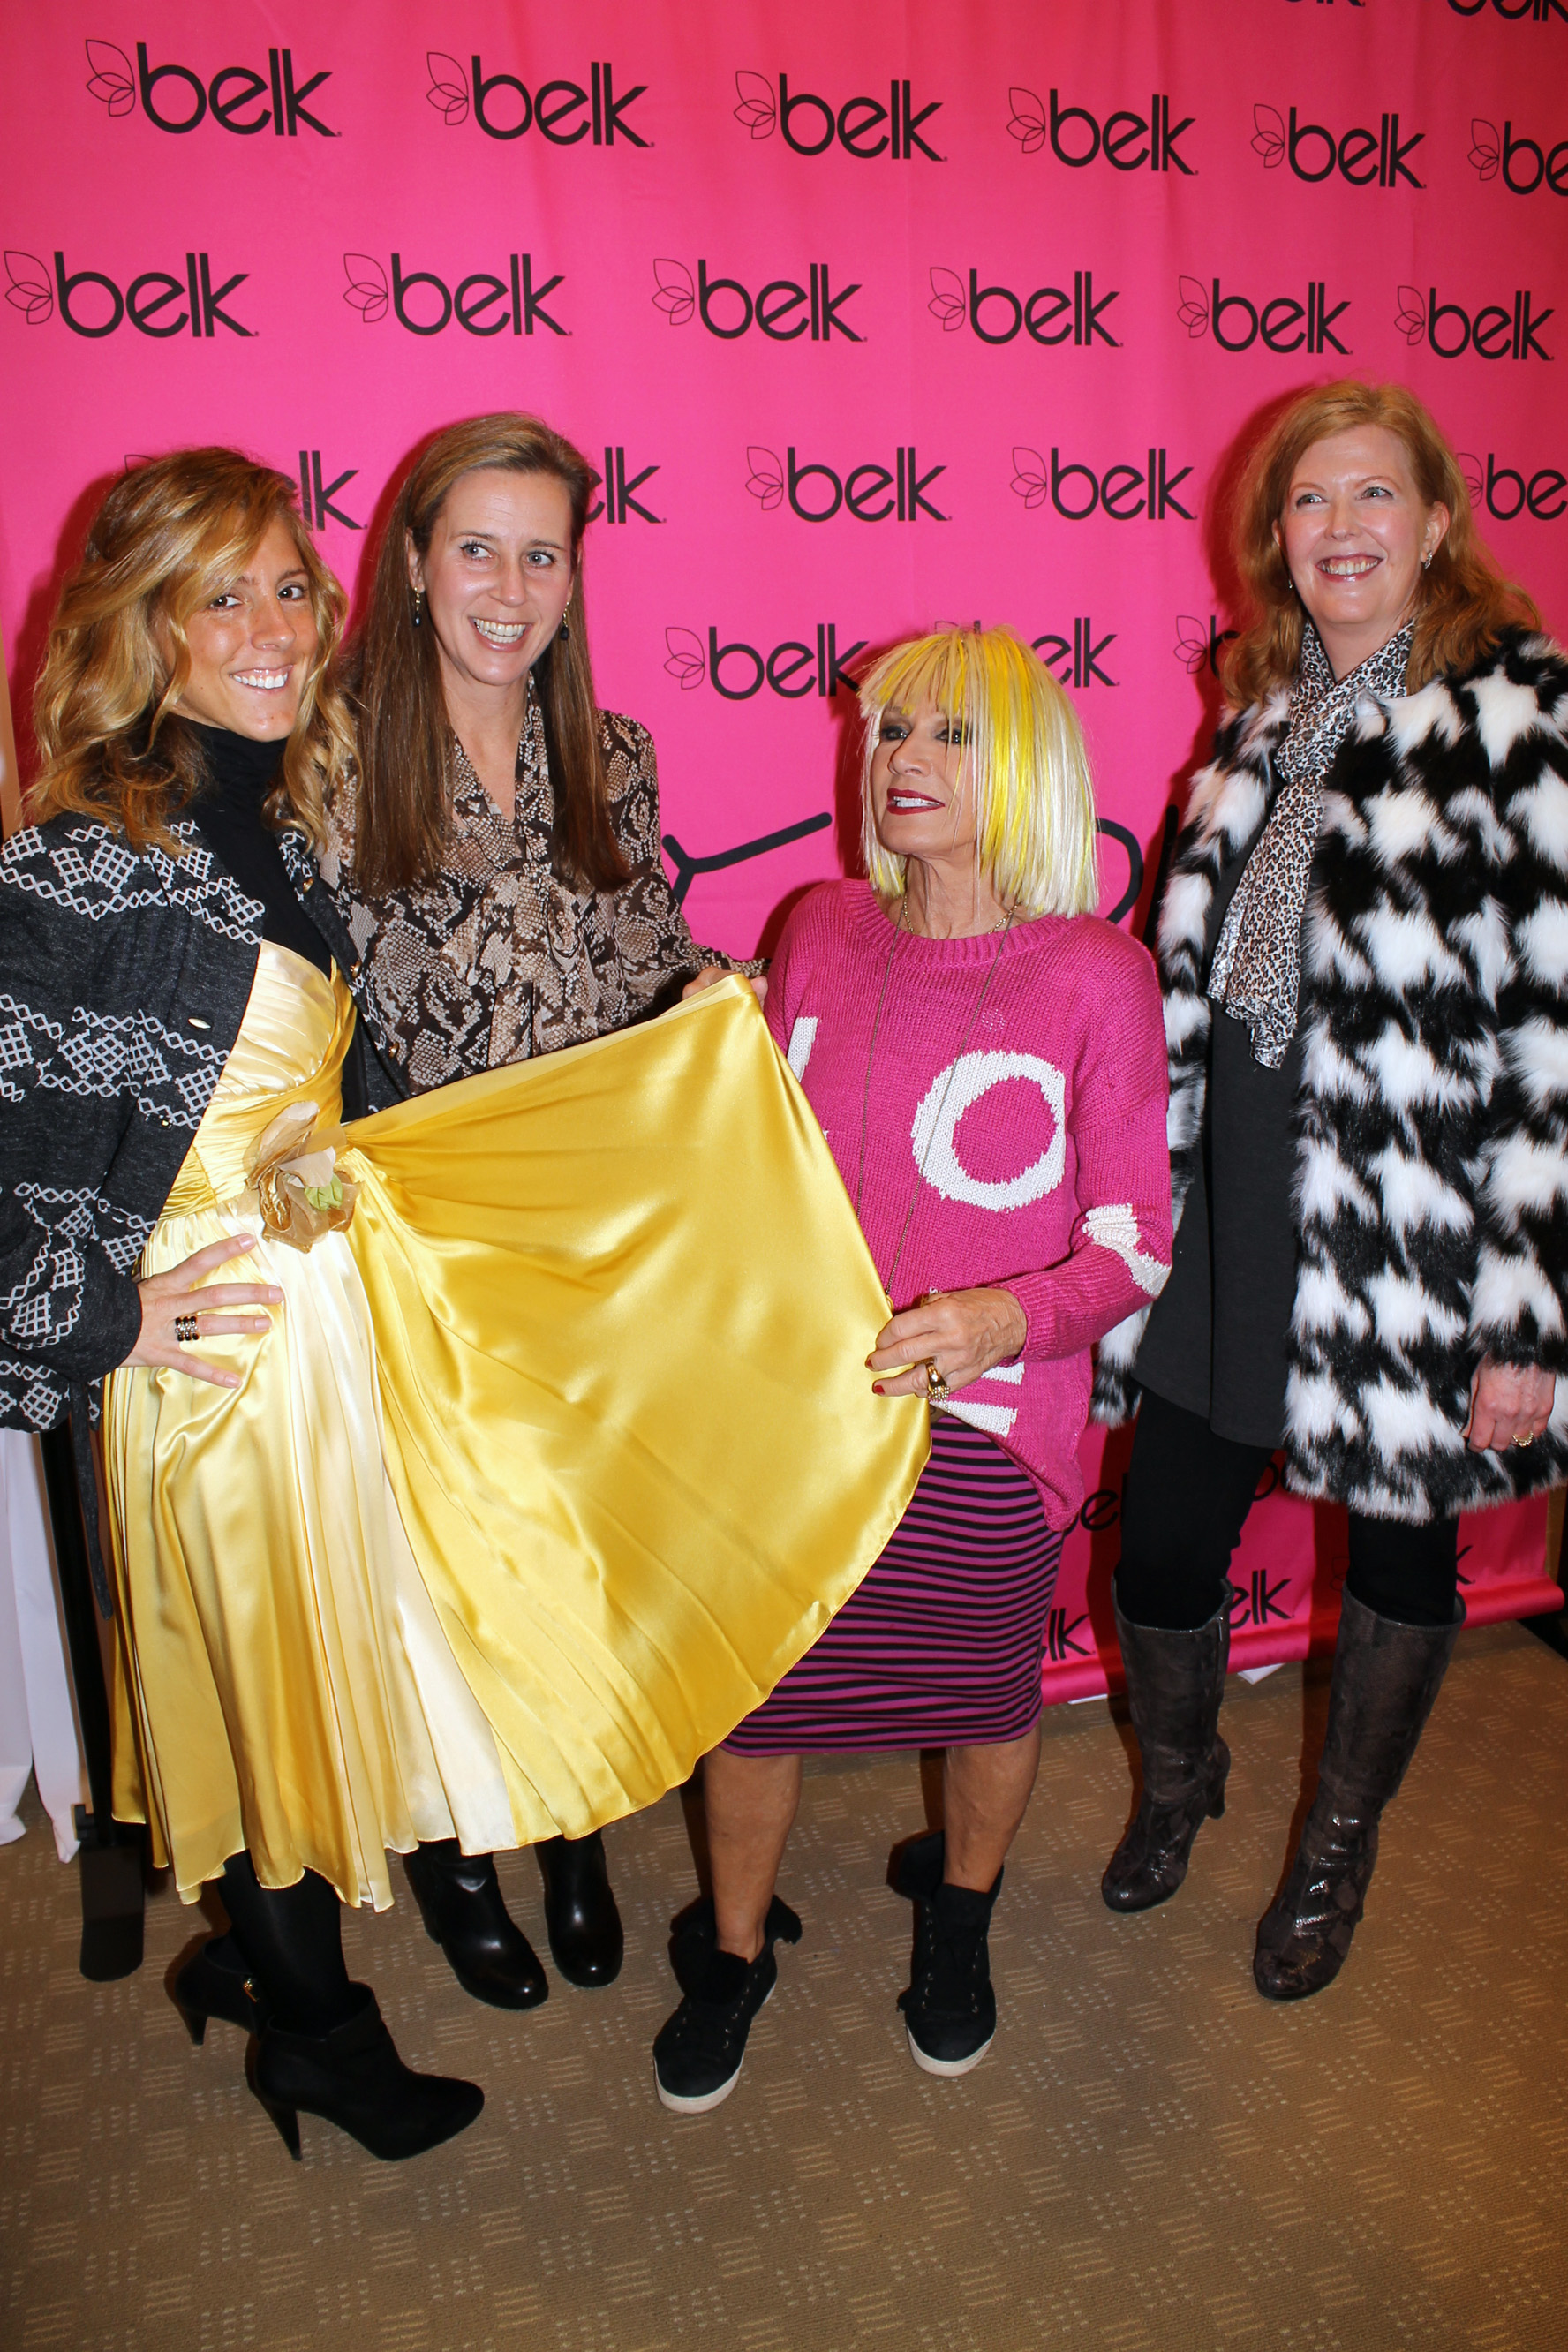 """I had a """"Betsey Blessed Wedding.""""  Smiling with Blair Farris, Editor of Peachy The Magazine, Betsey Johnson and Olivia Fortson, Social Editor of The Charlotte Observer and SouthPark Magazine."""